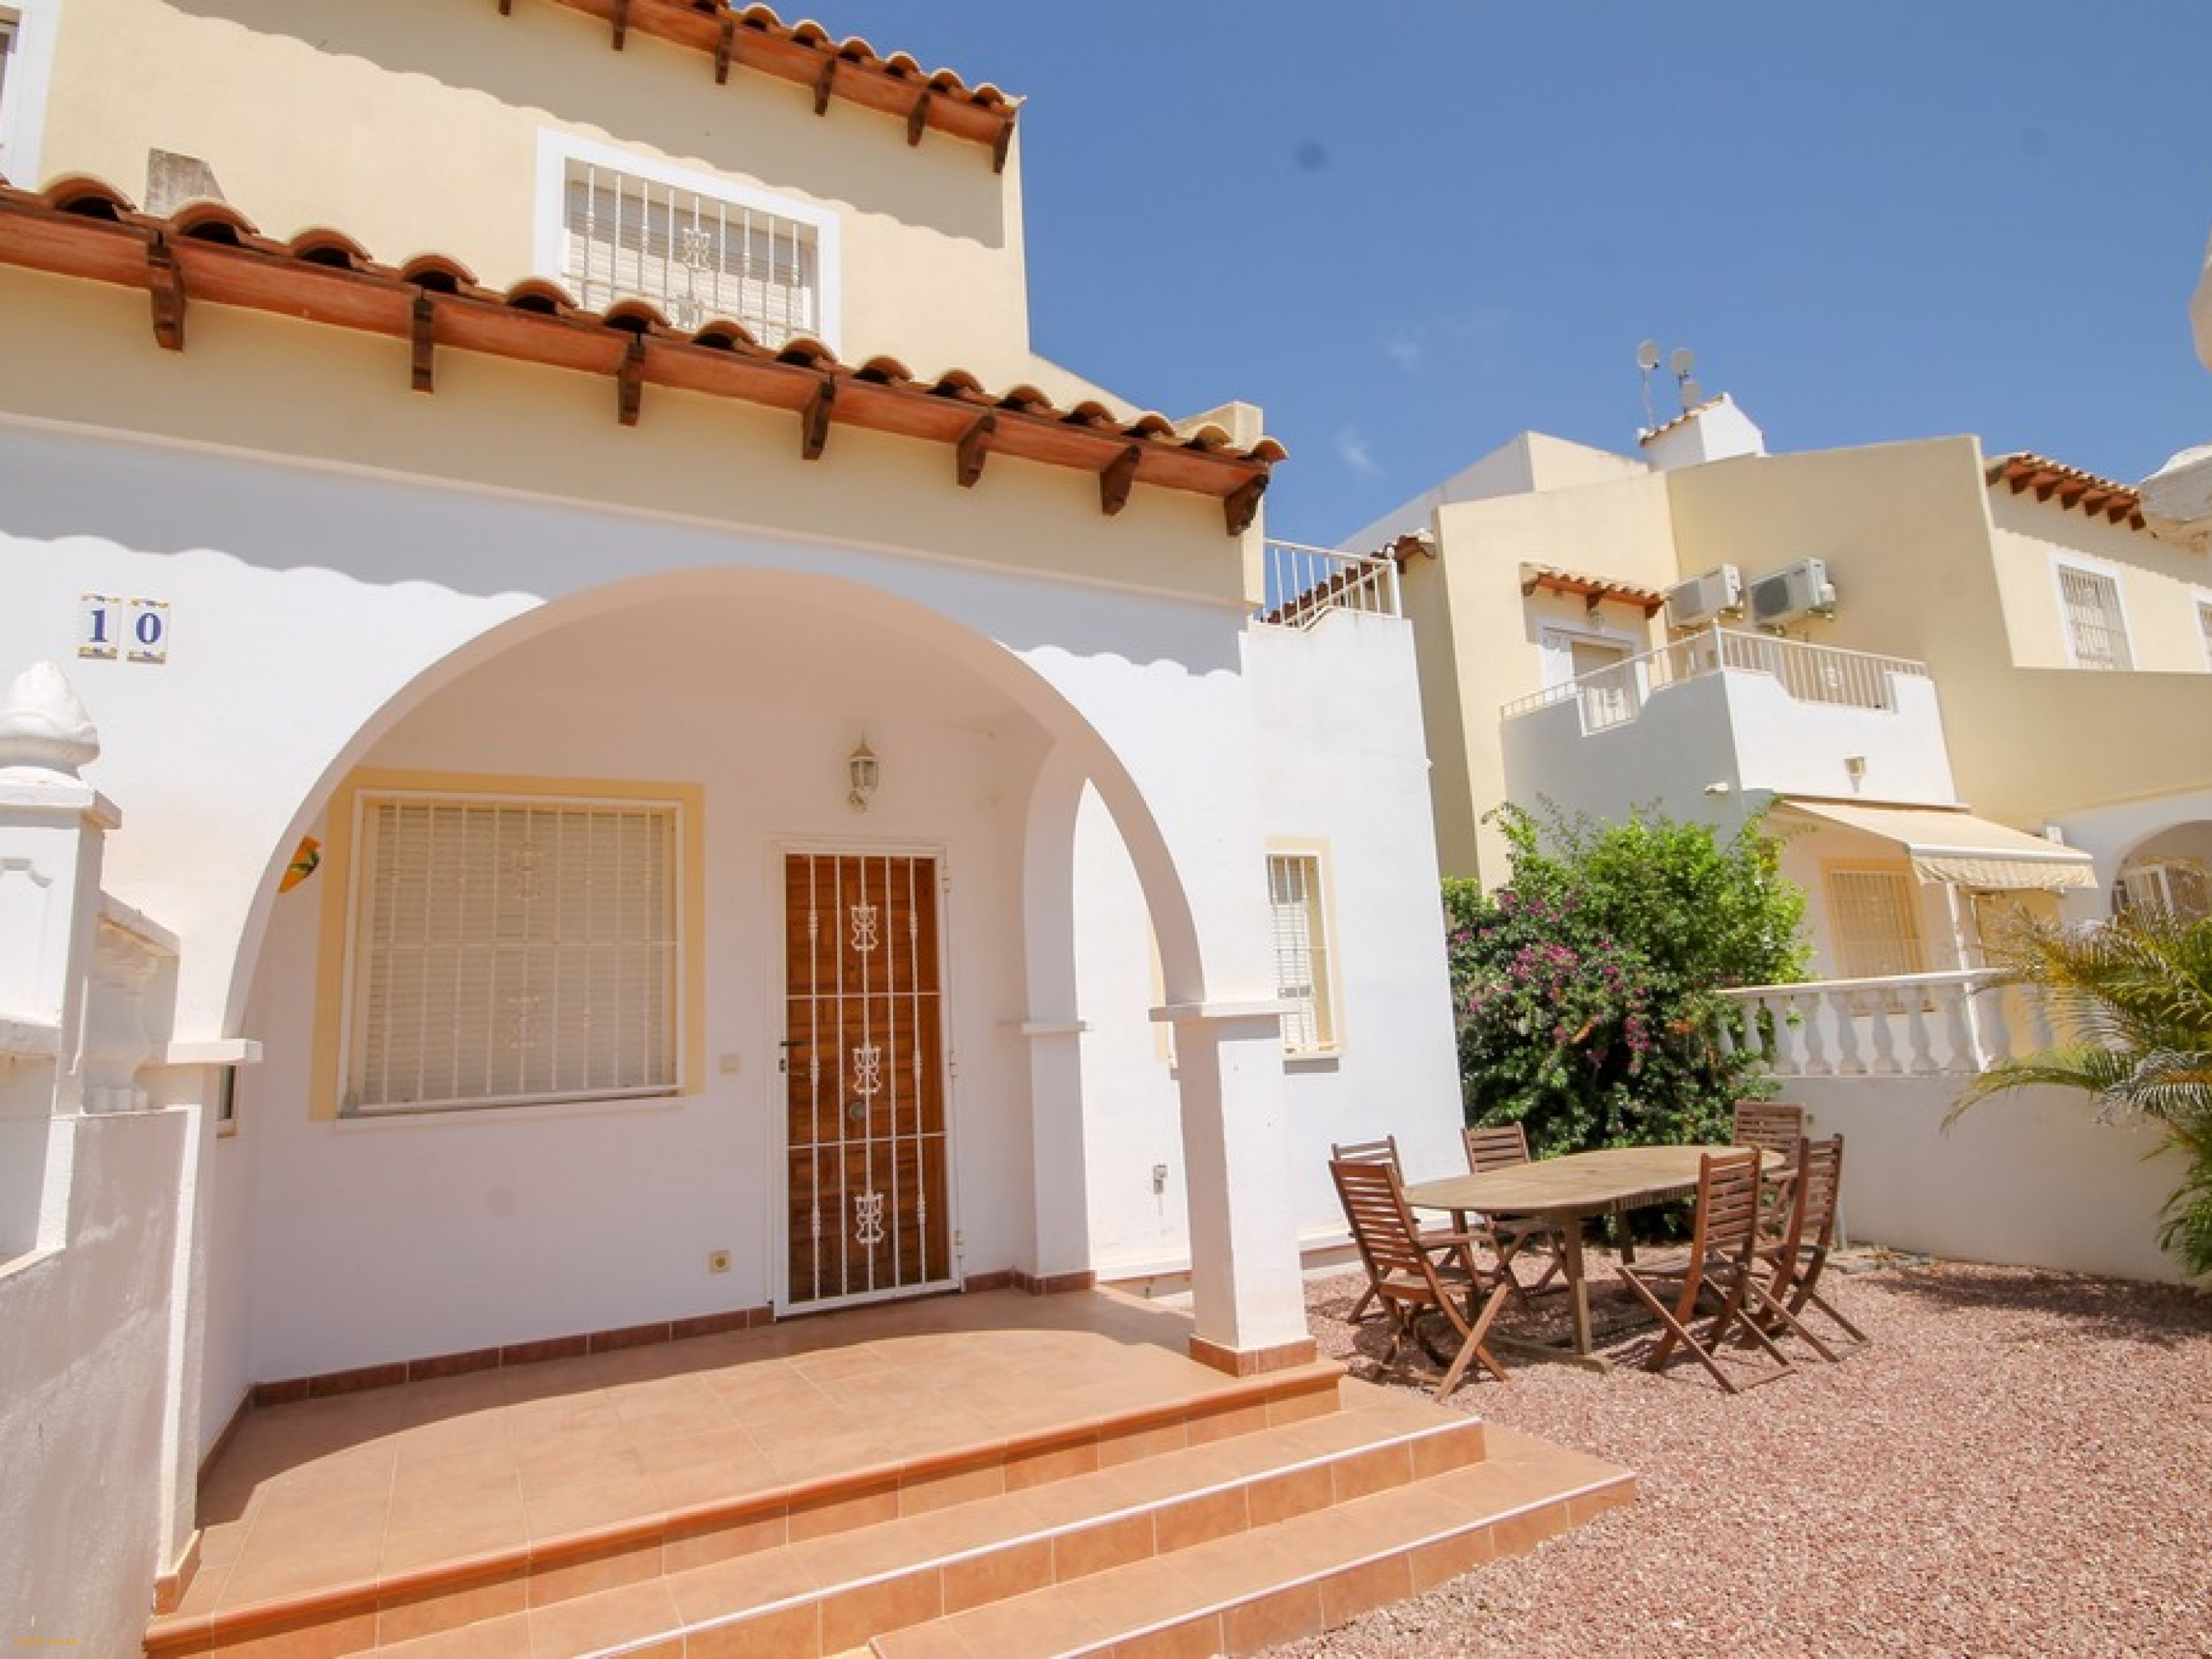 South facing quad villa with access to a communal pool